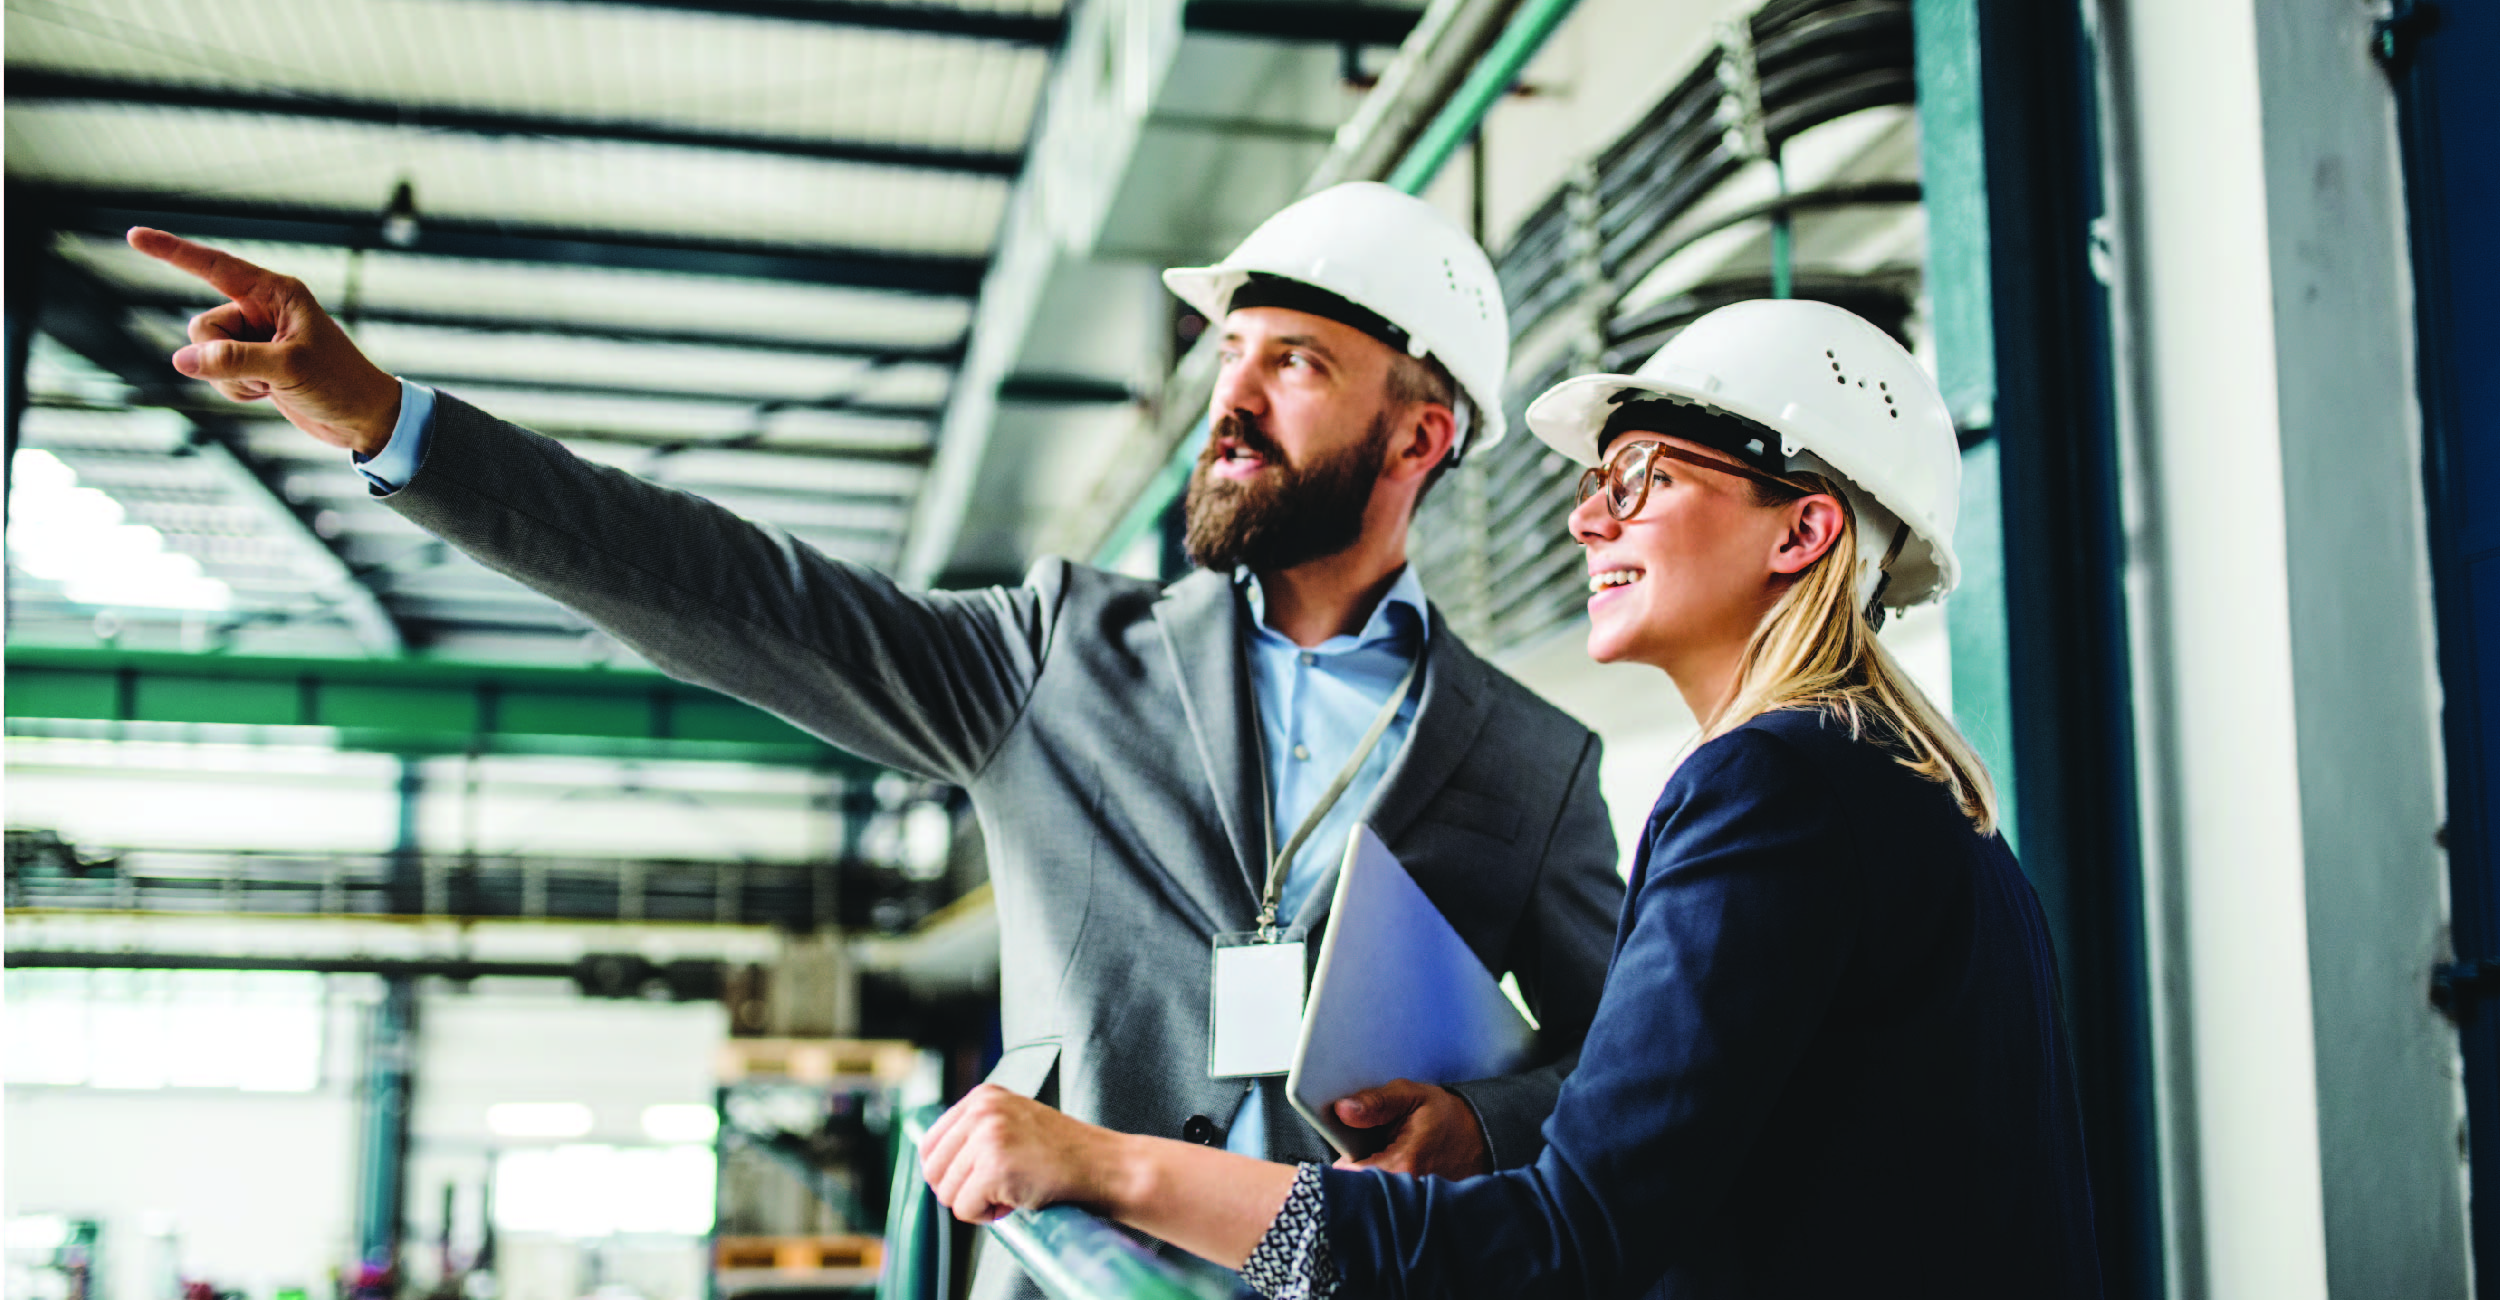 Complicated Supply Chain Scenarios Where VAT is Charged | Man and Woman in hard hats